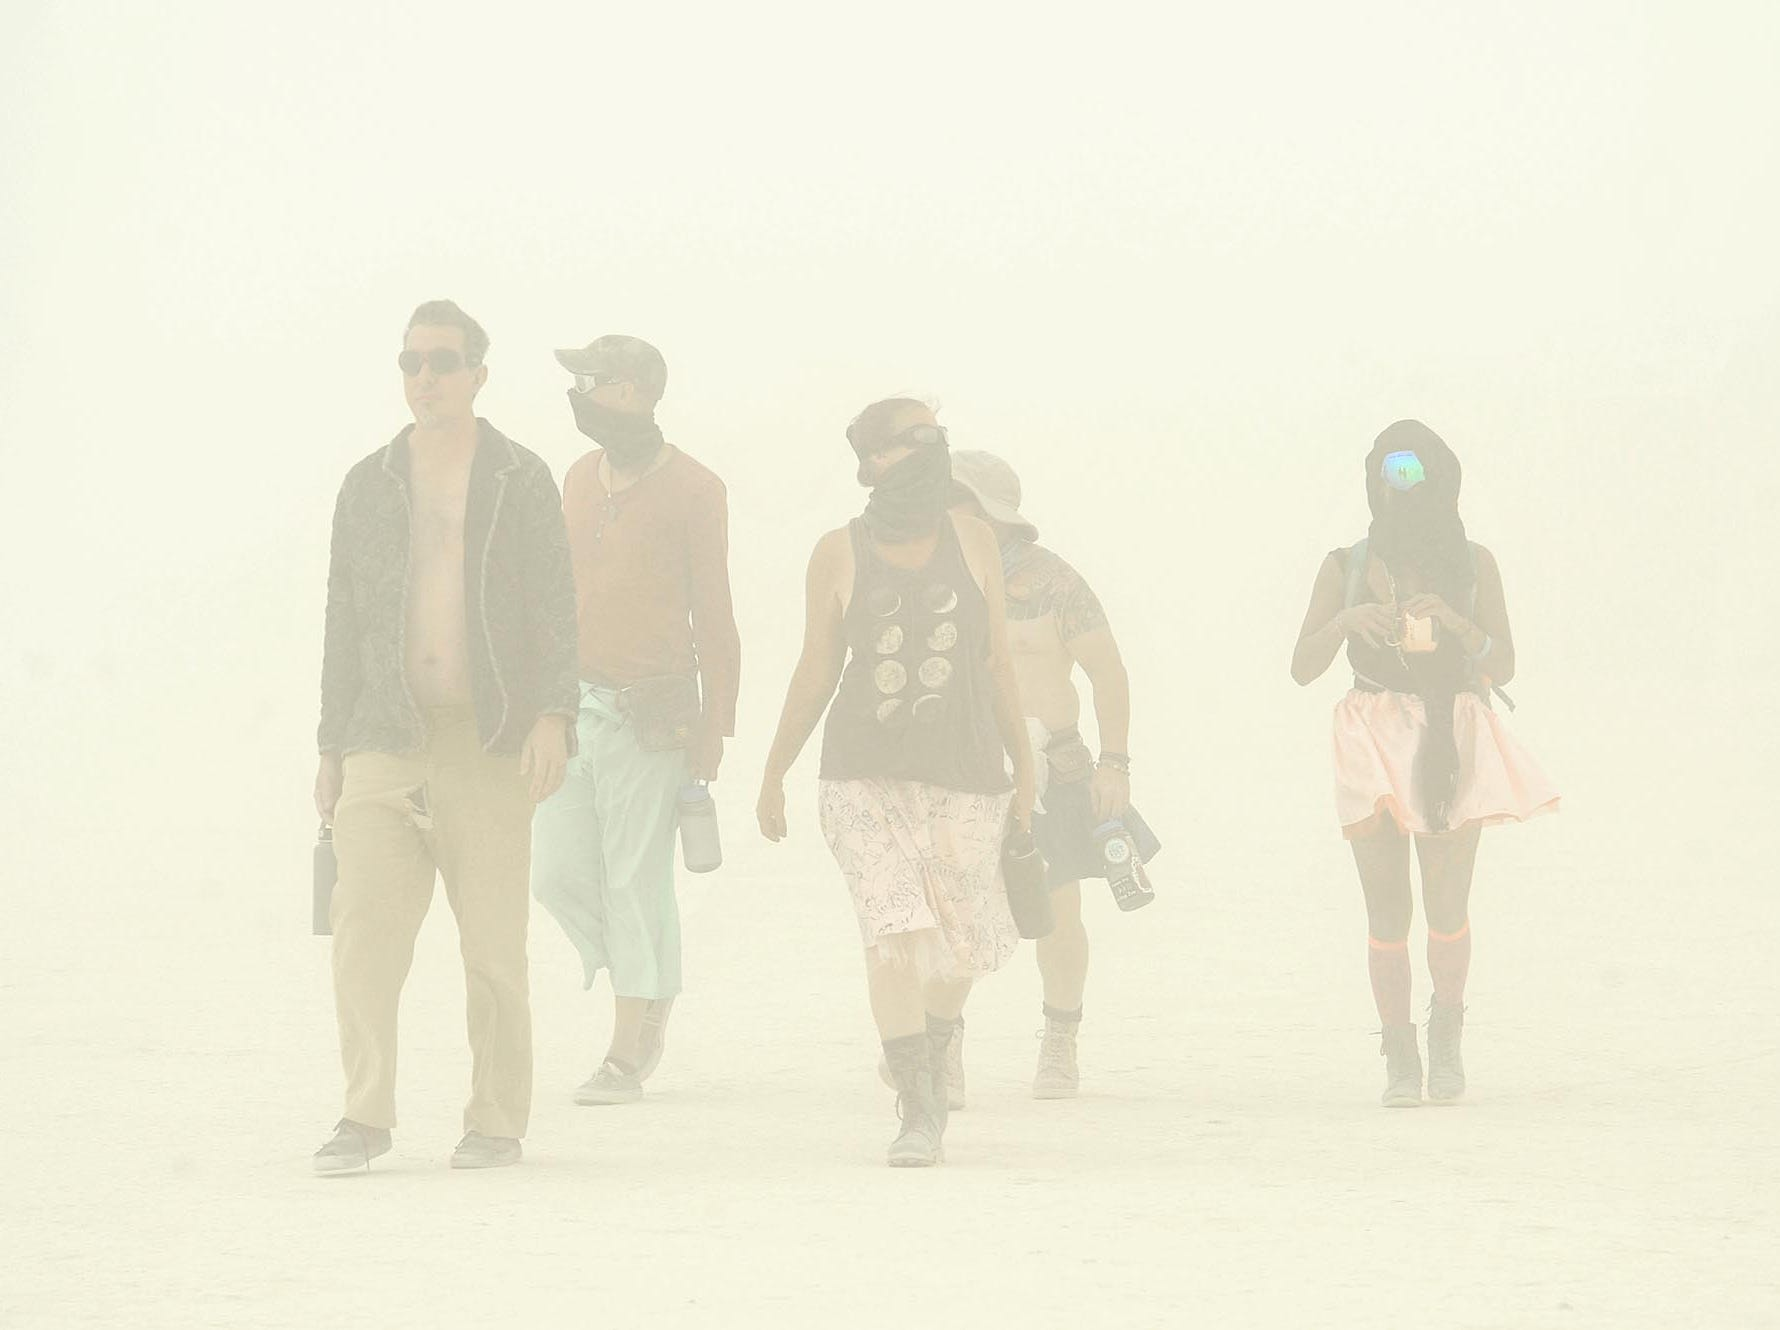 Images from a very dusty opening day at Burning Man on August 26, 2018.